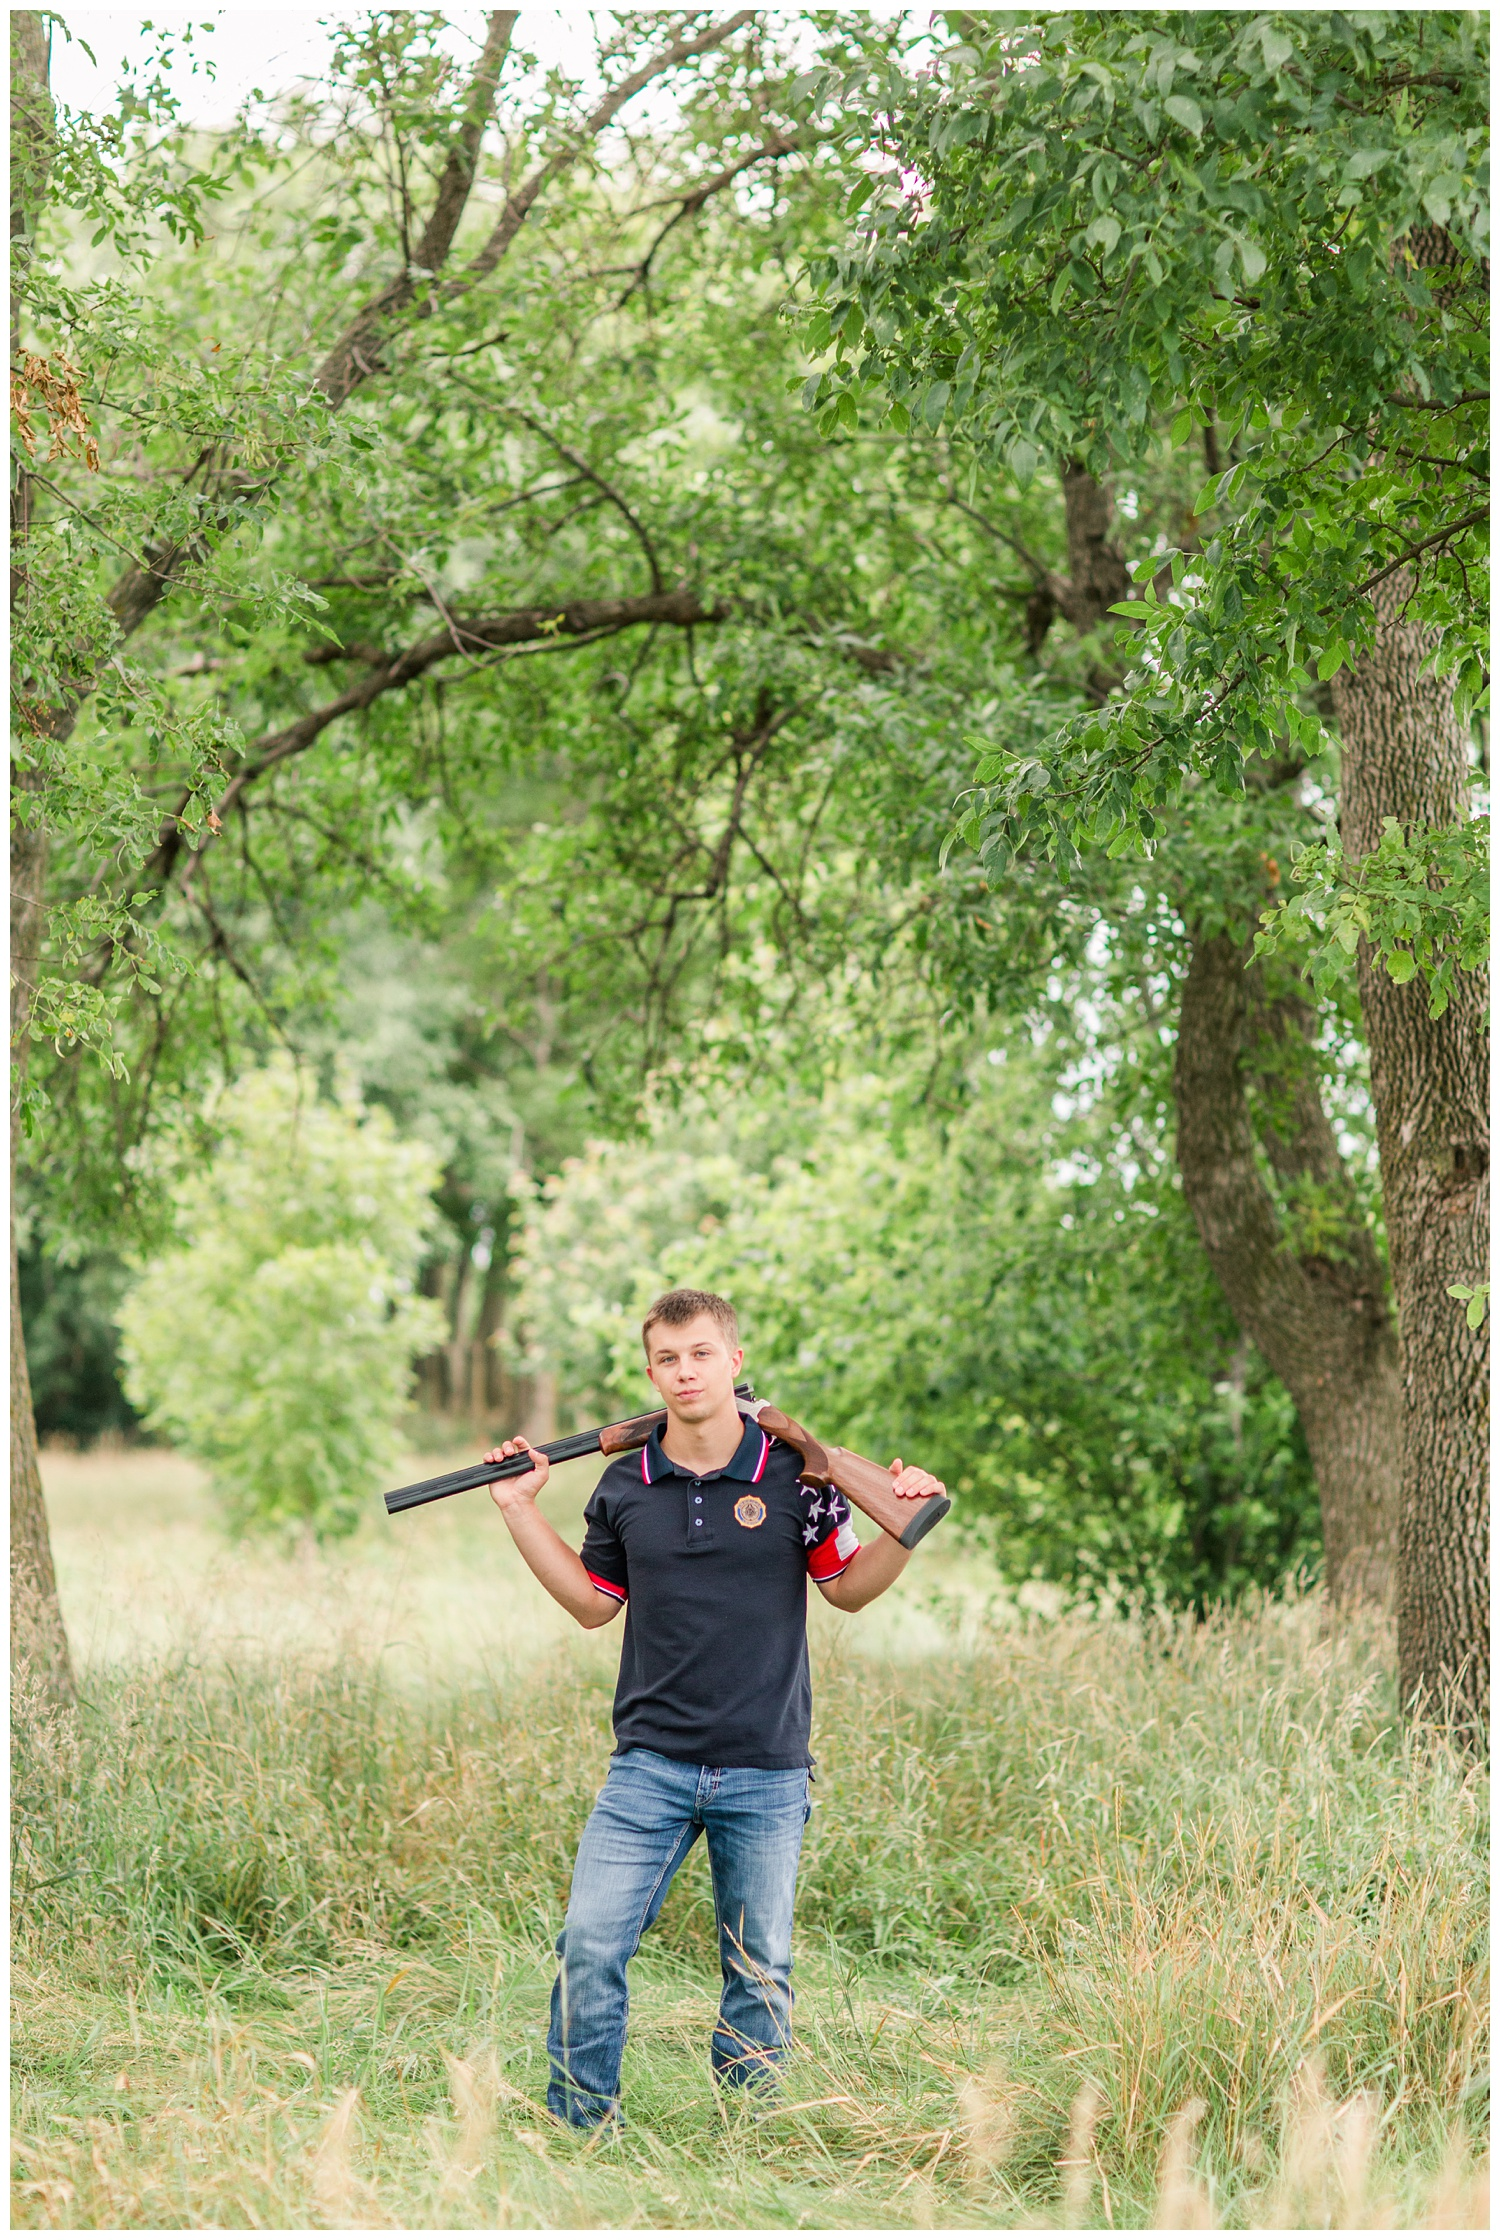 Senior boy wearing trapshooting gear carrying a shotgun around his neck in a grassy field surrounded by trees a on rural Iowa farm | CB Studio